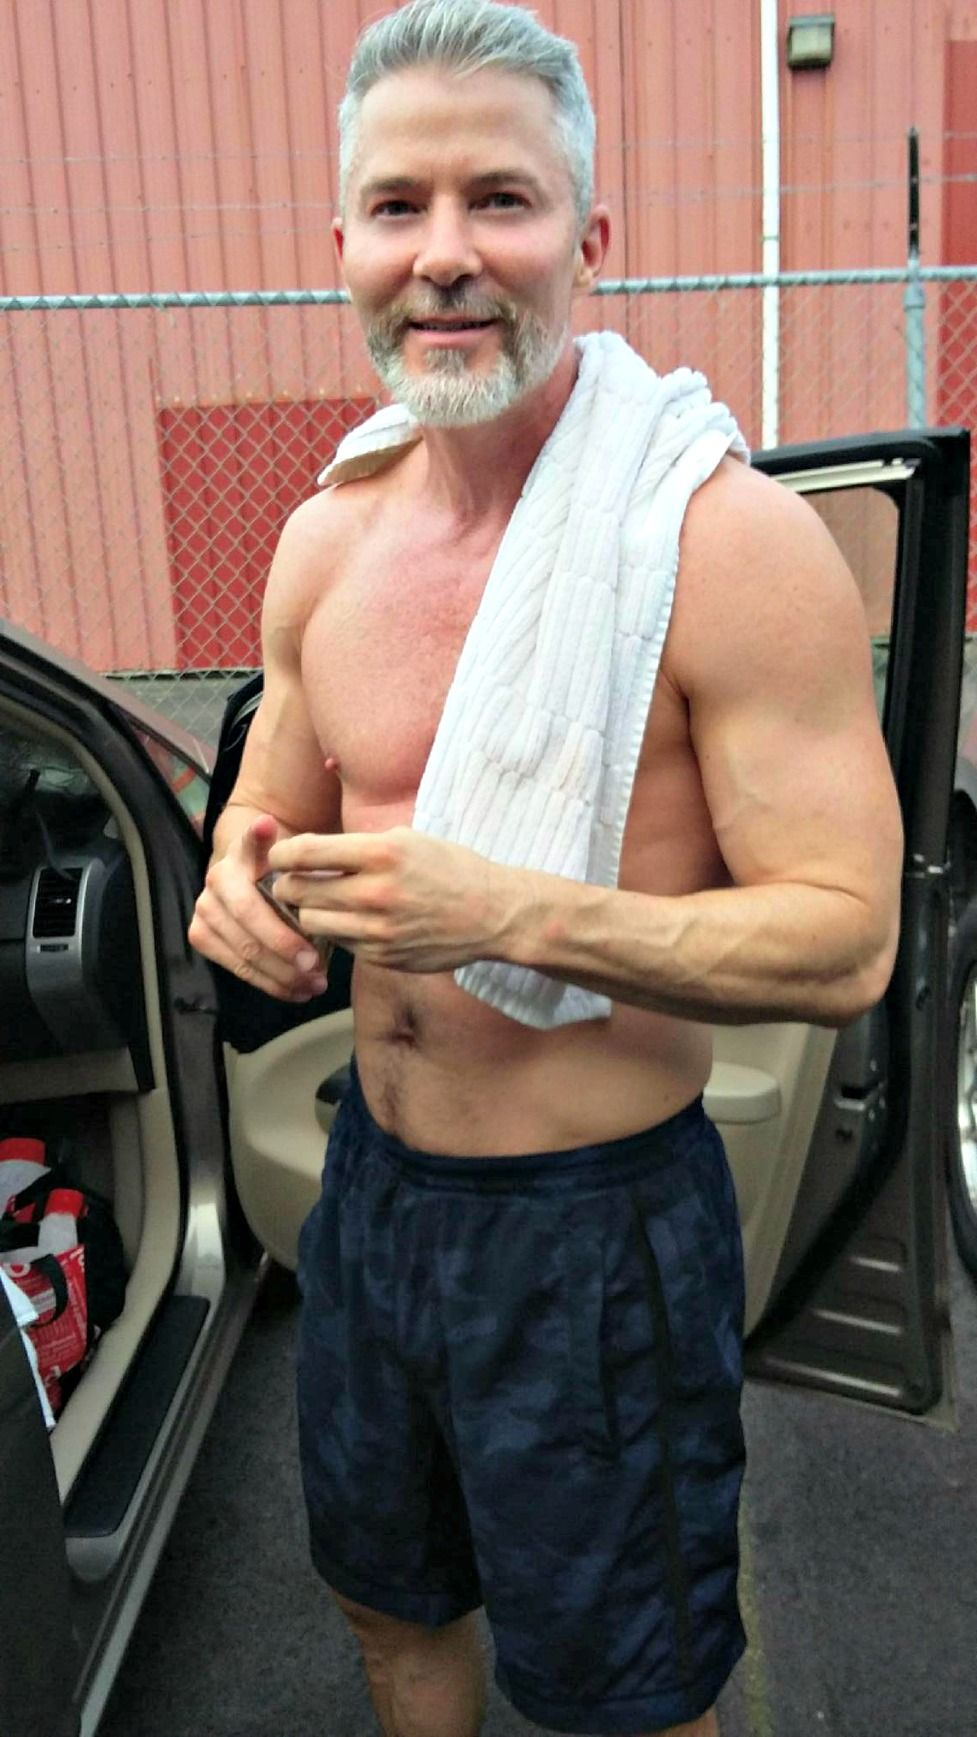 What Are The Advantages Of Fit After 50 For Men Reviews?